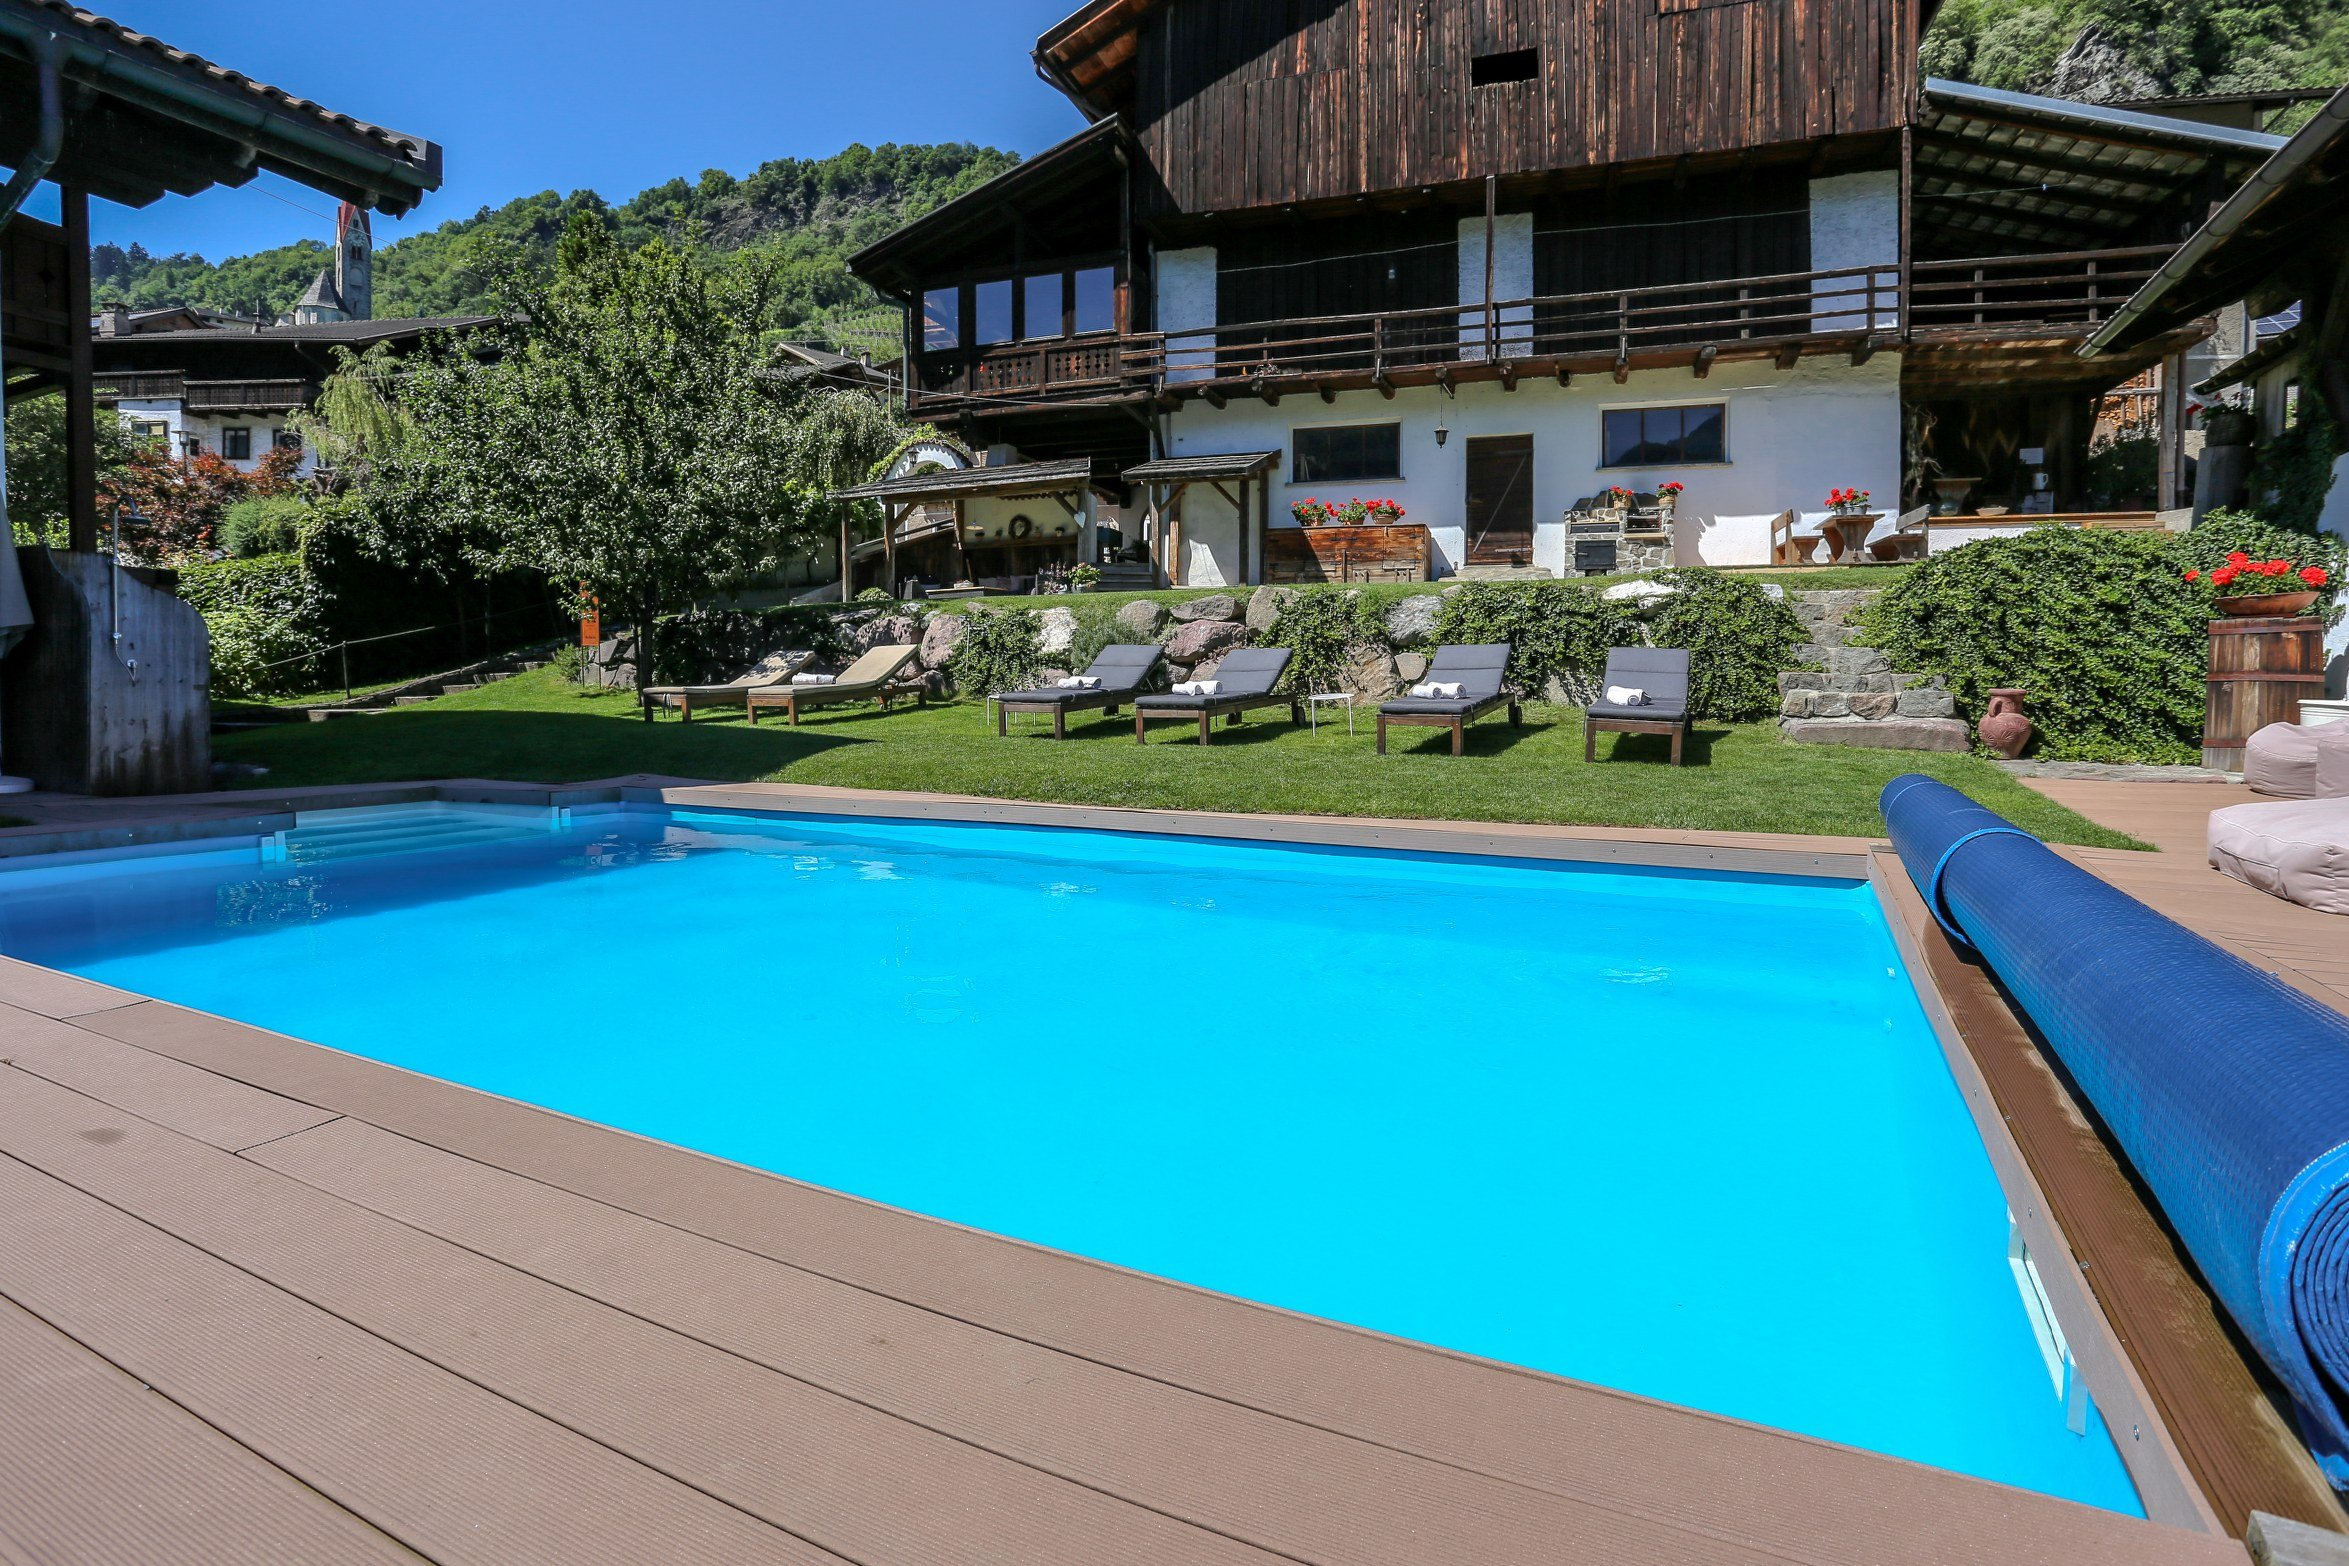 Pool Garten Winter Vacation Apartments With Swimming Pool Moarhof Bz